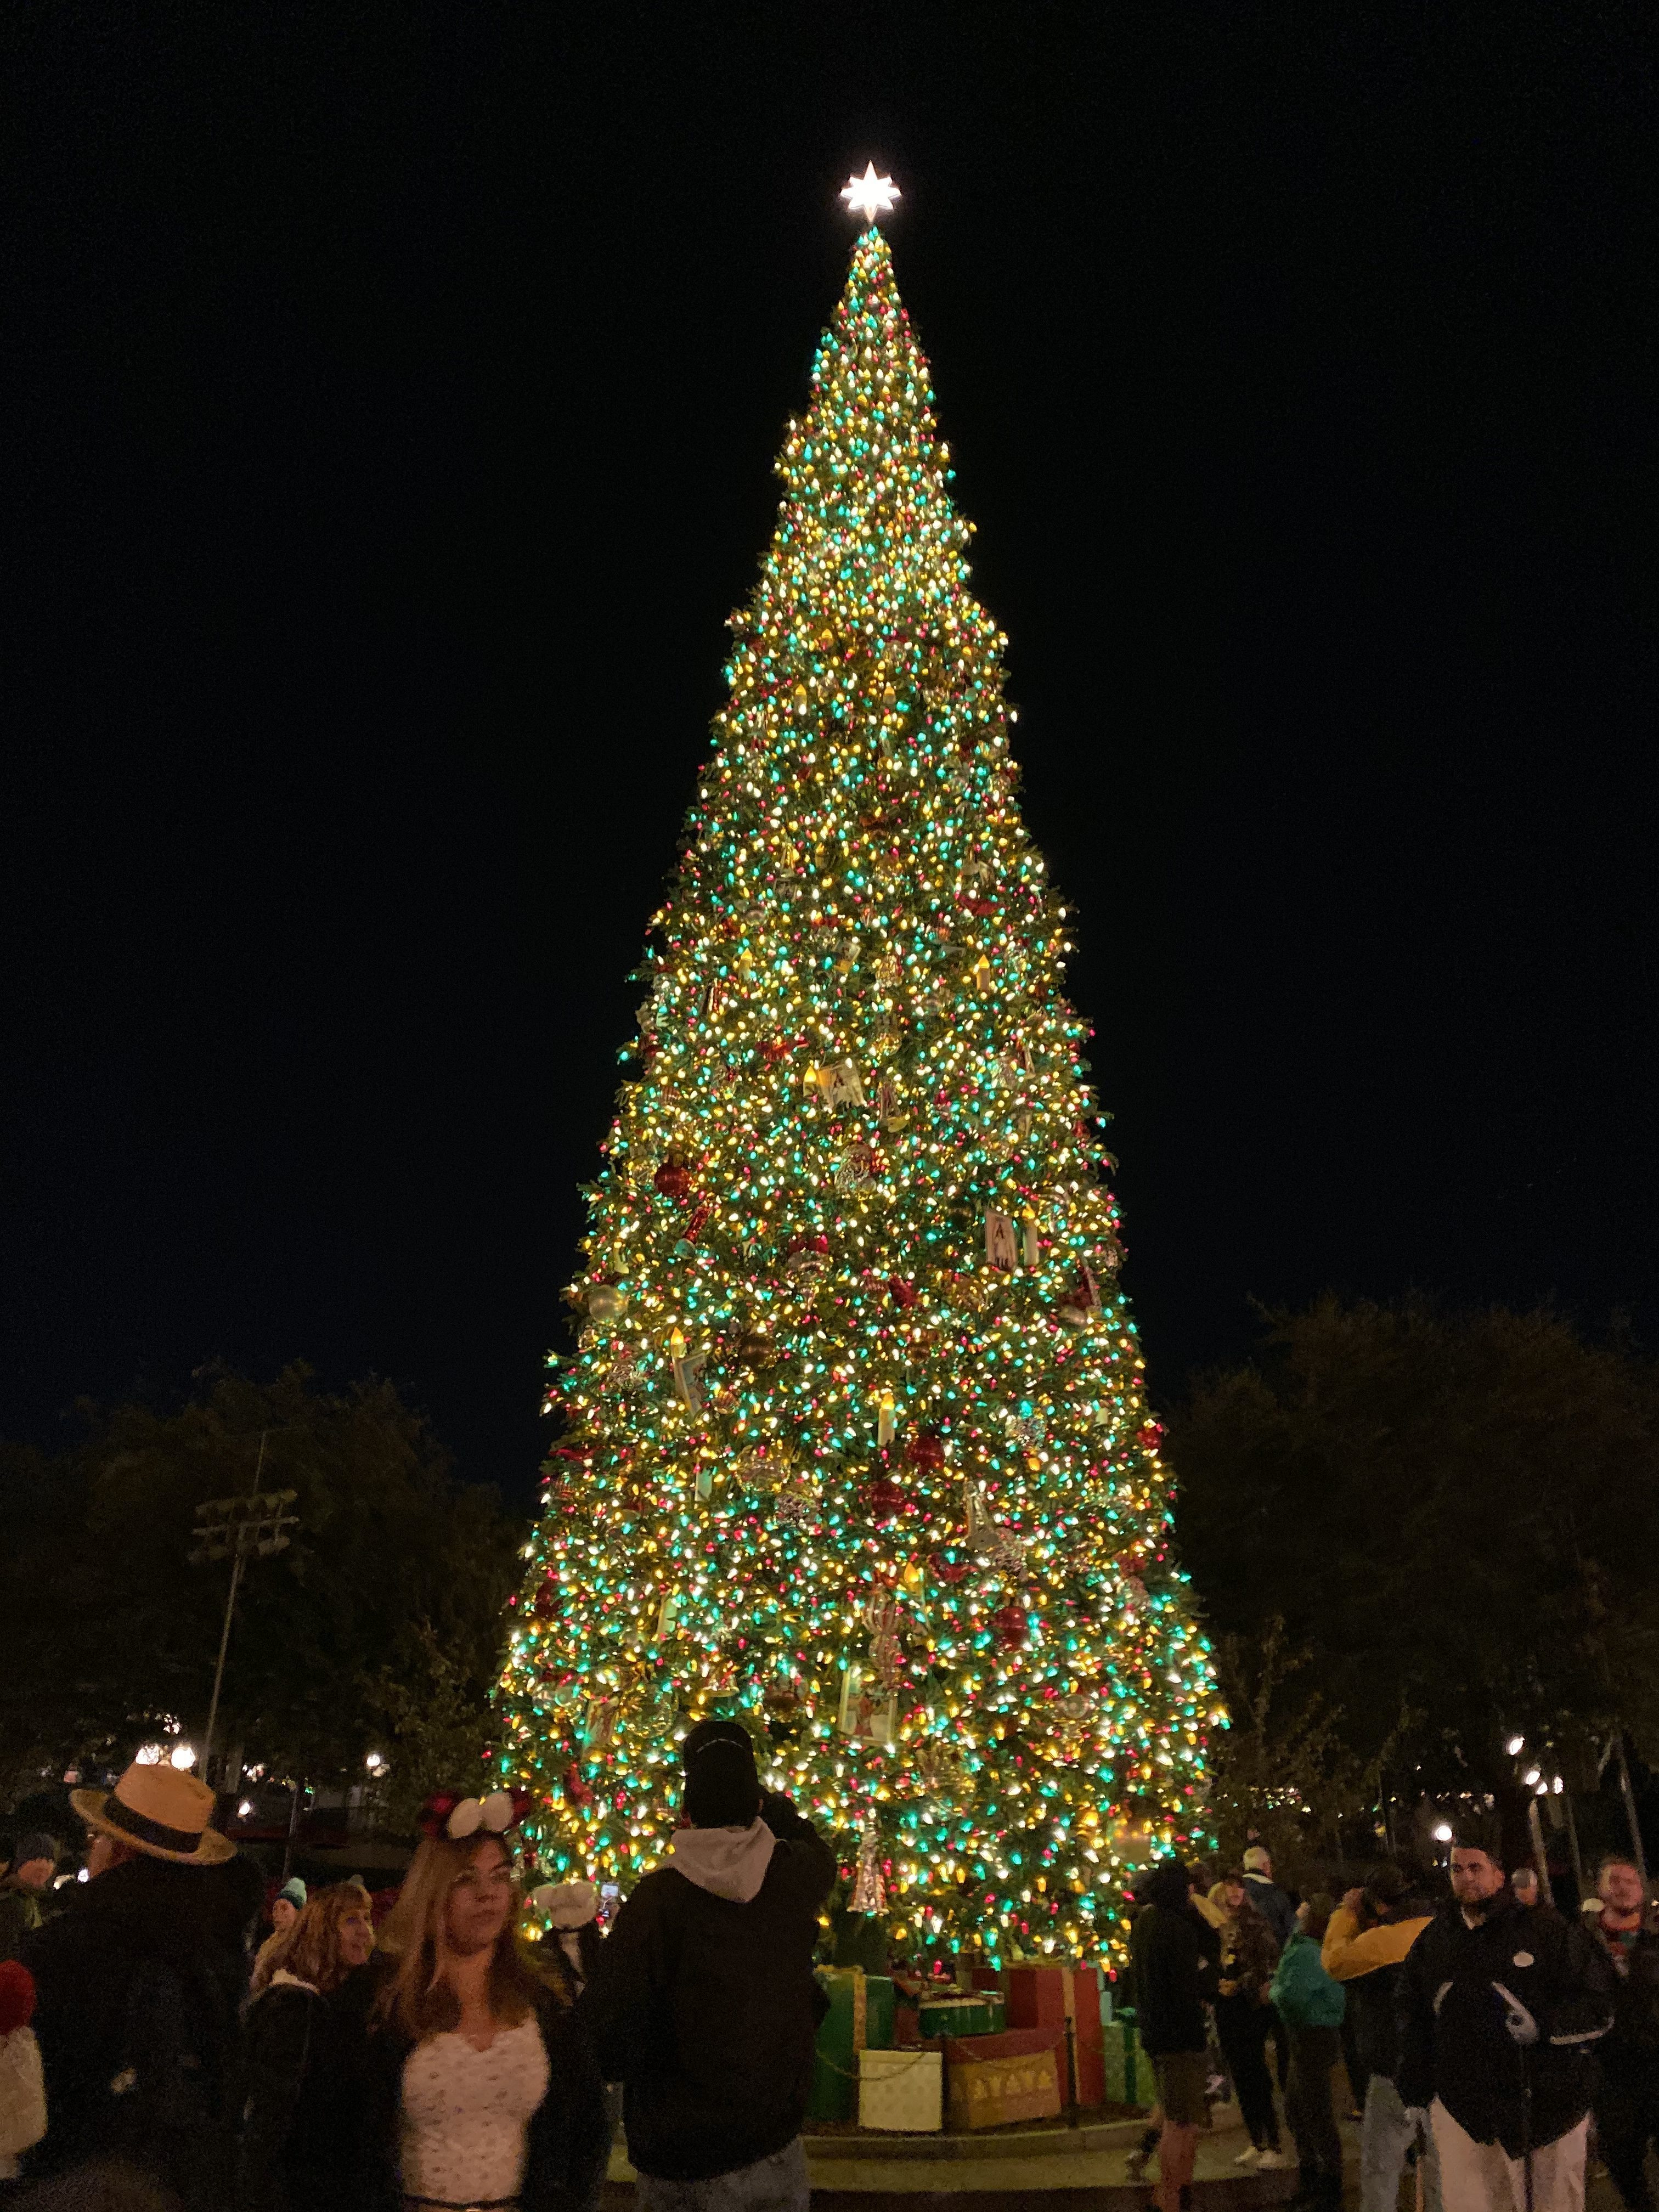 A lit up Christmas tree in Disneyland